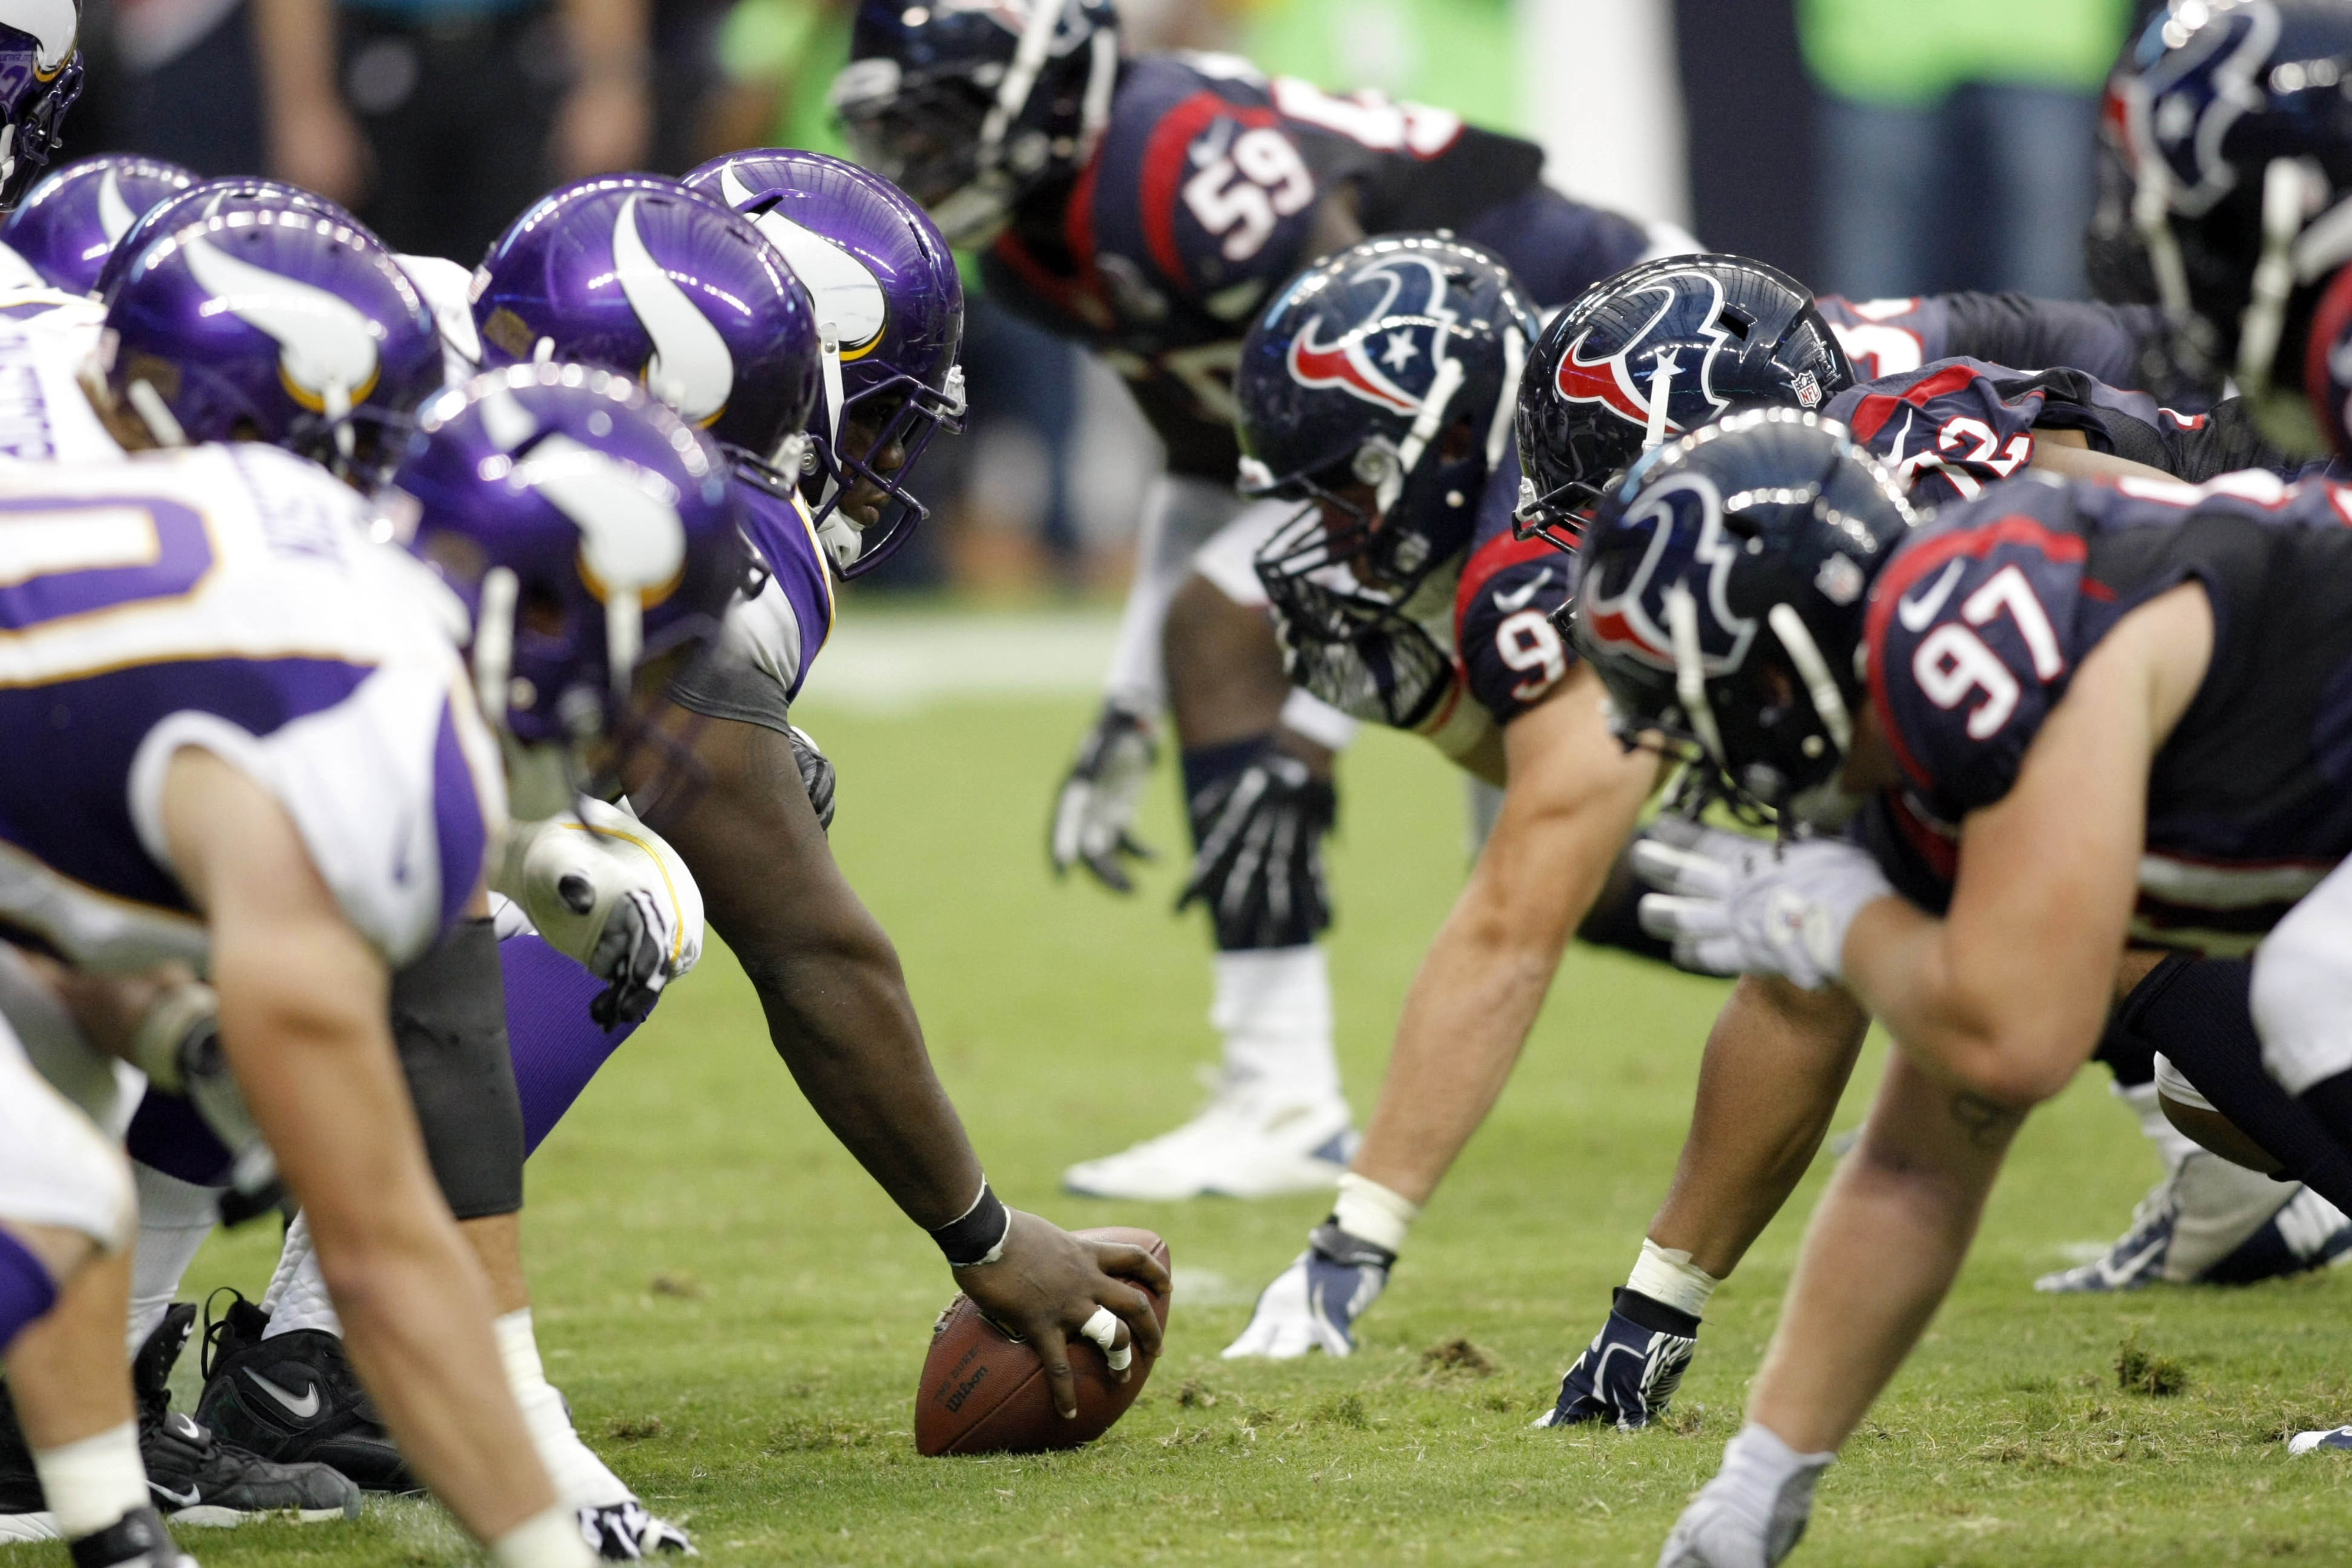 Aug 30, 2012; Houston, TX, USA; General view of the line of scrimmage during a game between the Houston Texans and Minnesota Vikings in the second quarter at Reliant Stadium. Mandatory Credit: Brett Davis-US PRESSWIRE